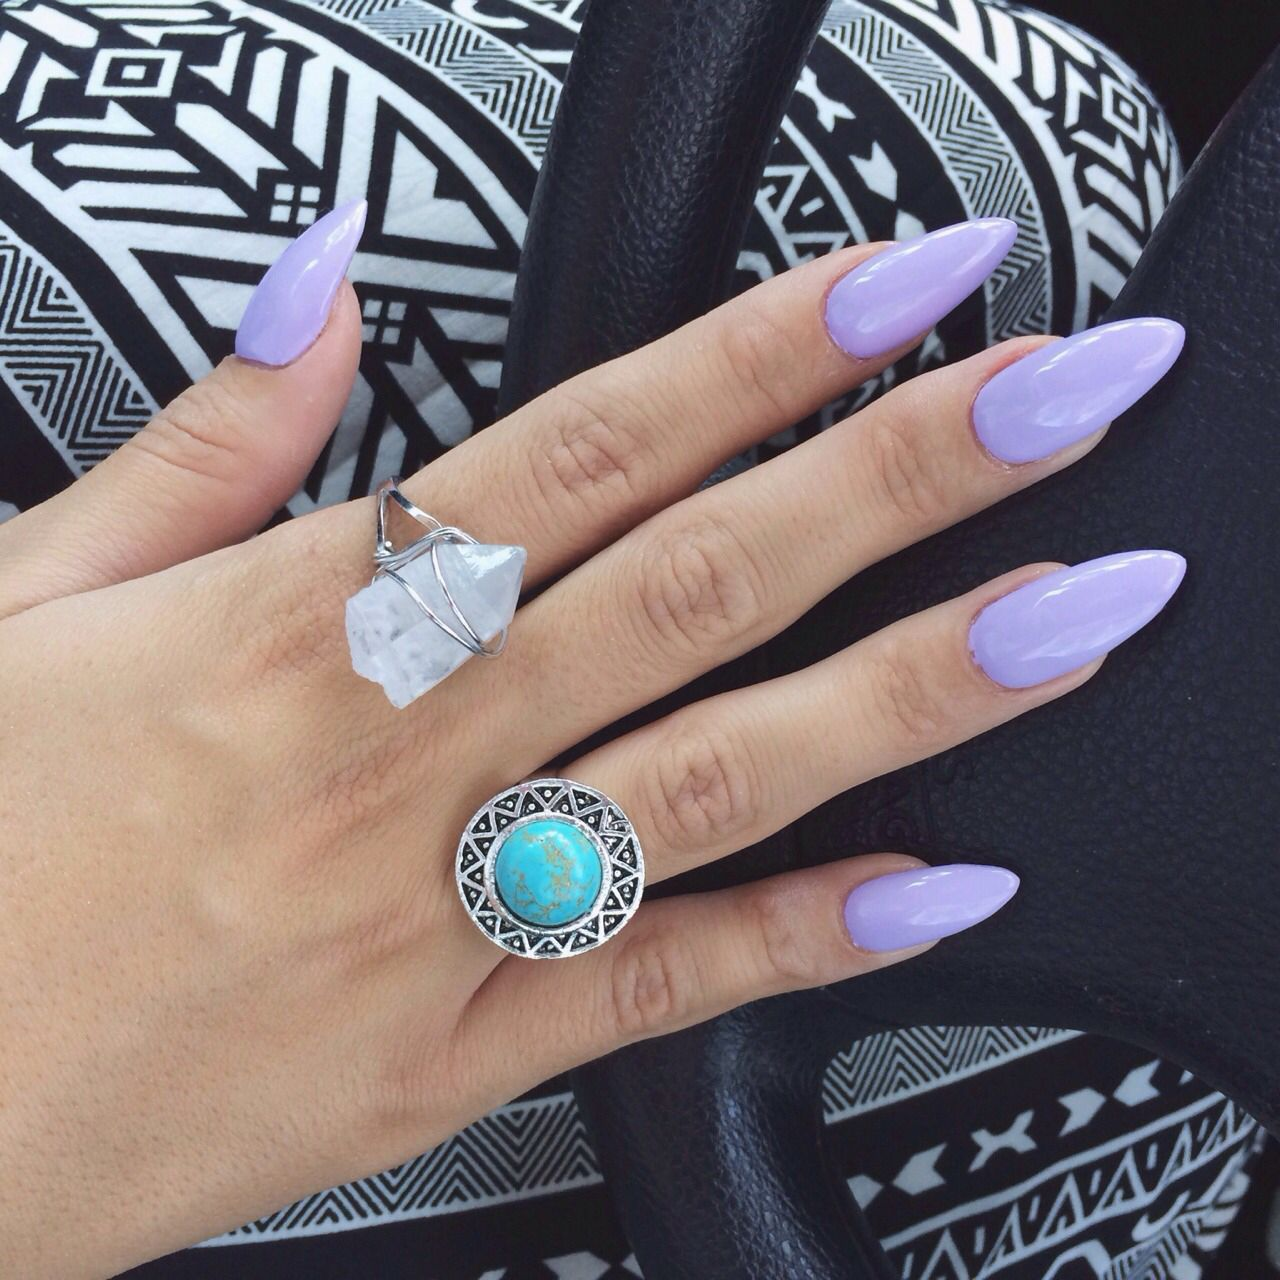 Pin von Cheyenne Finkley auf .get your nails did. | Pinterest